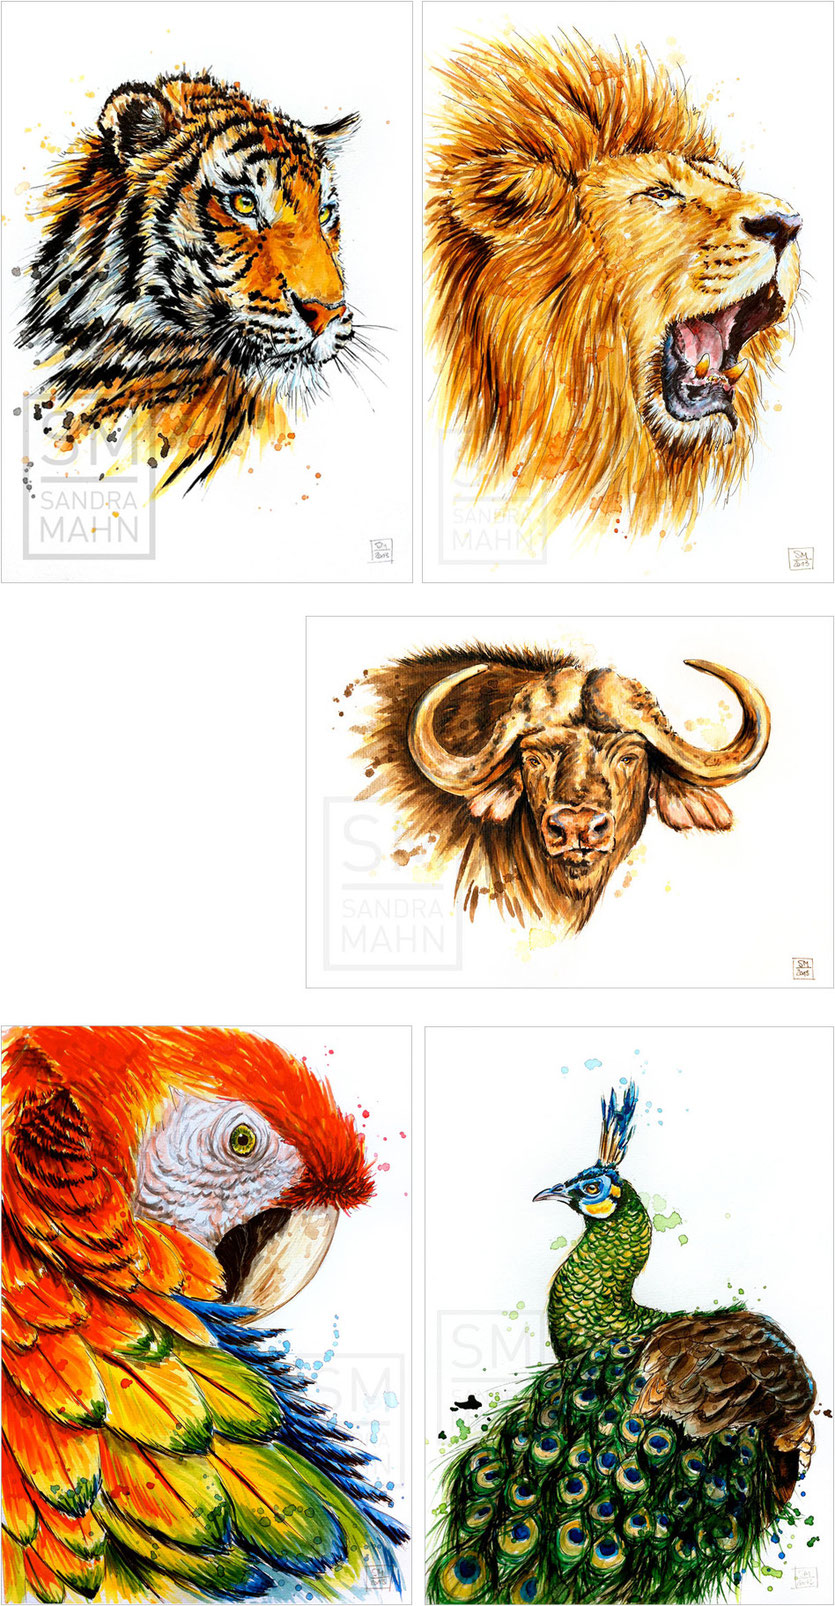 Tiger (verk.) - Löwe (verk.) - Kaffernbüffel - Papagei (verk.) - Grüner Pfau (verk.) | tiger (sold) - lion (sold) - african buffalo - macaw (sold) - green peacock (sold)